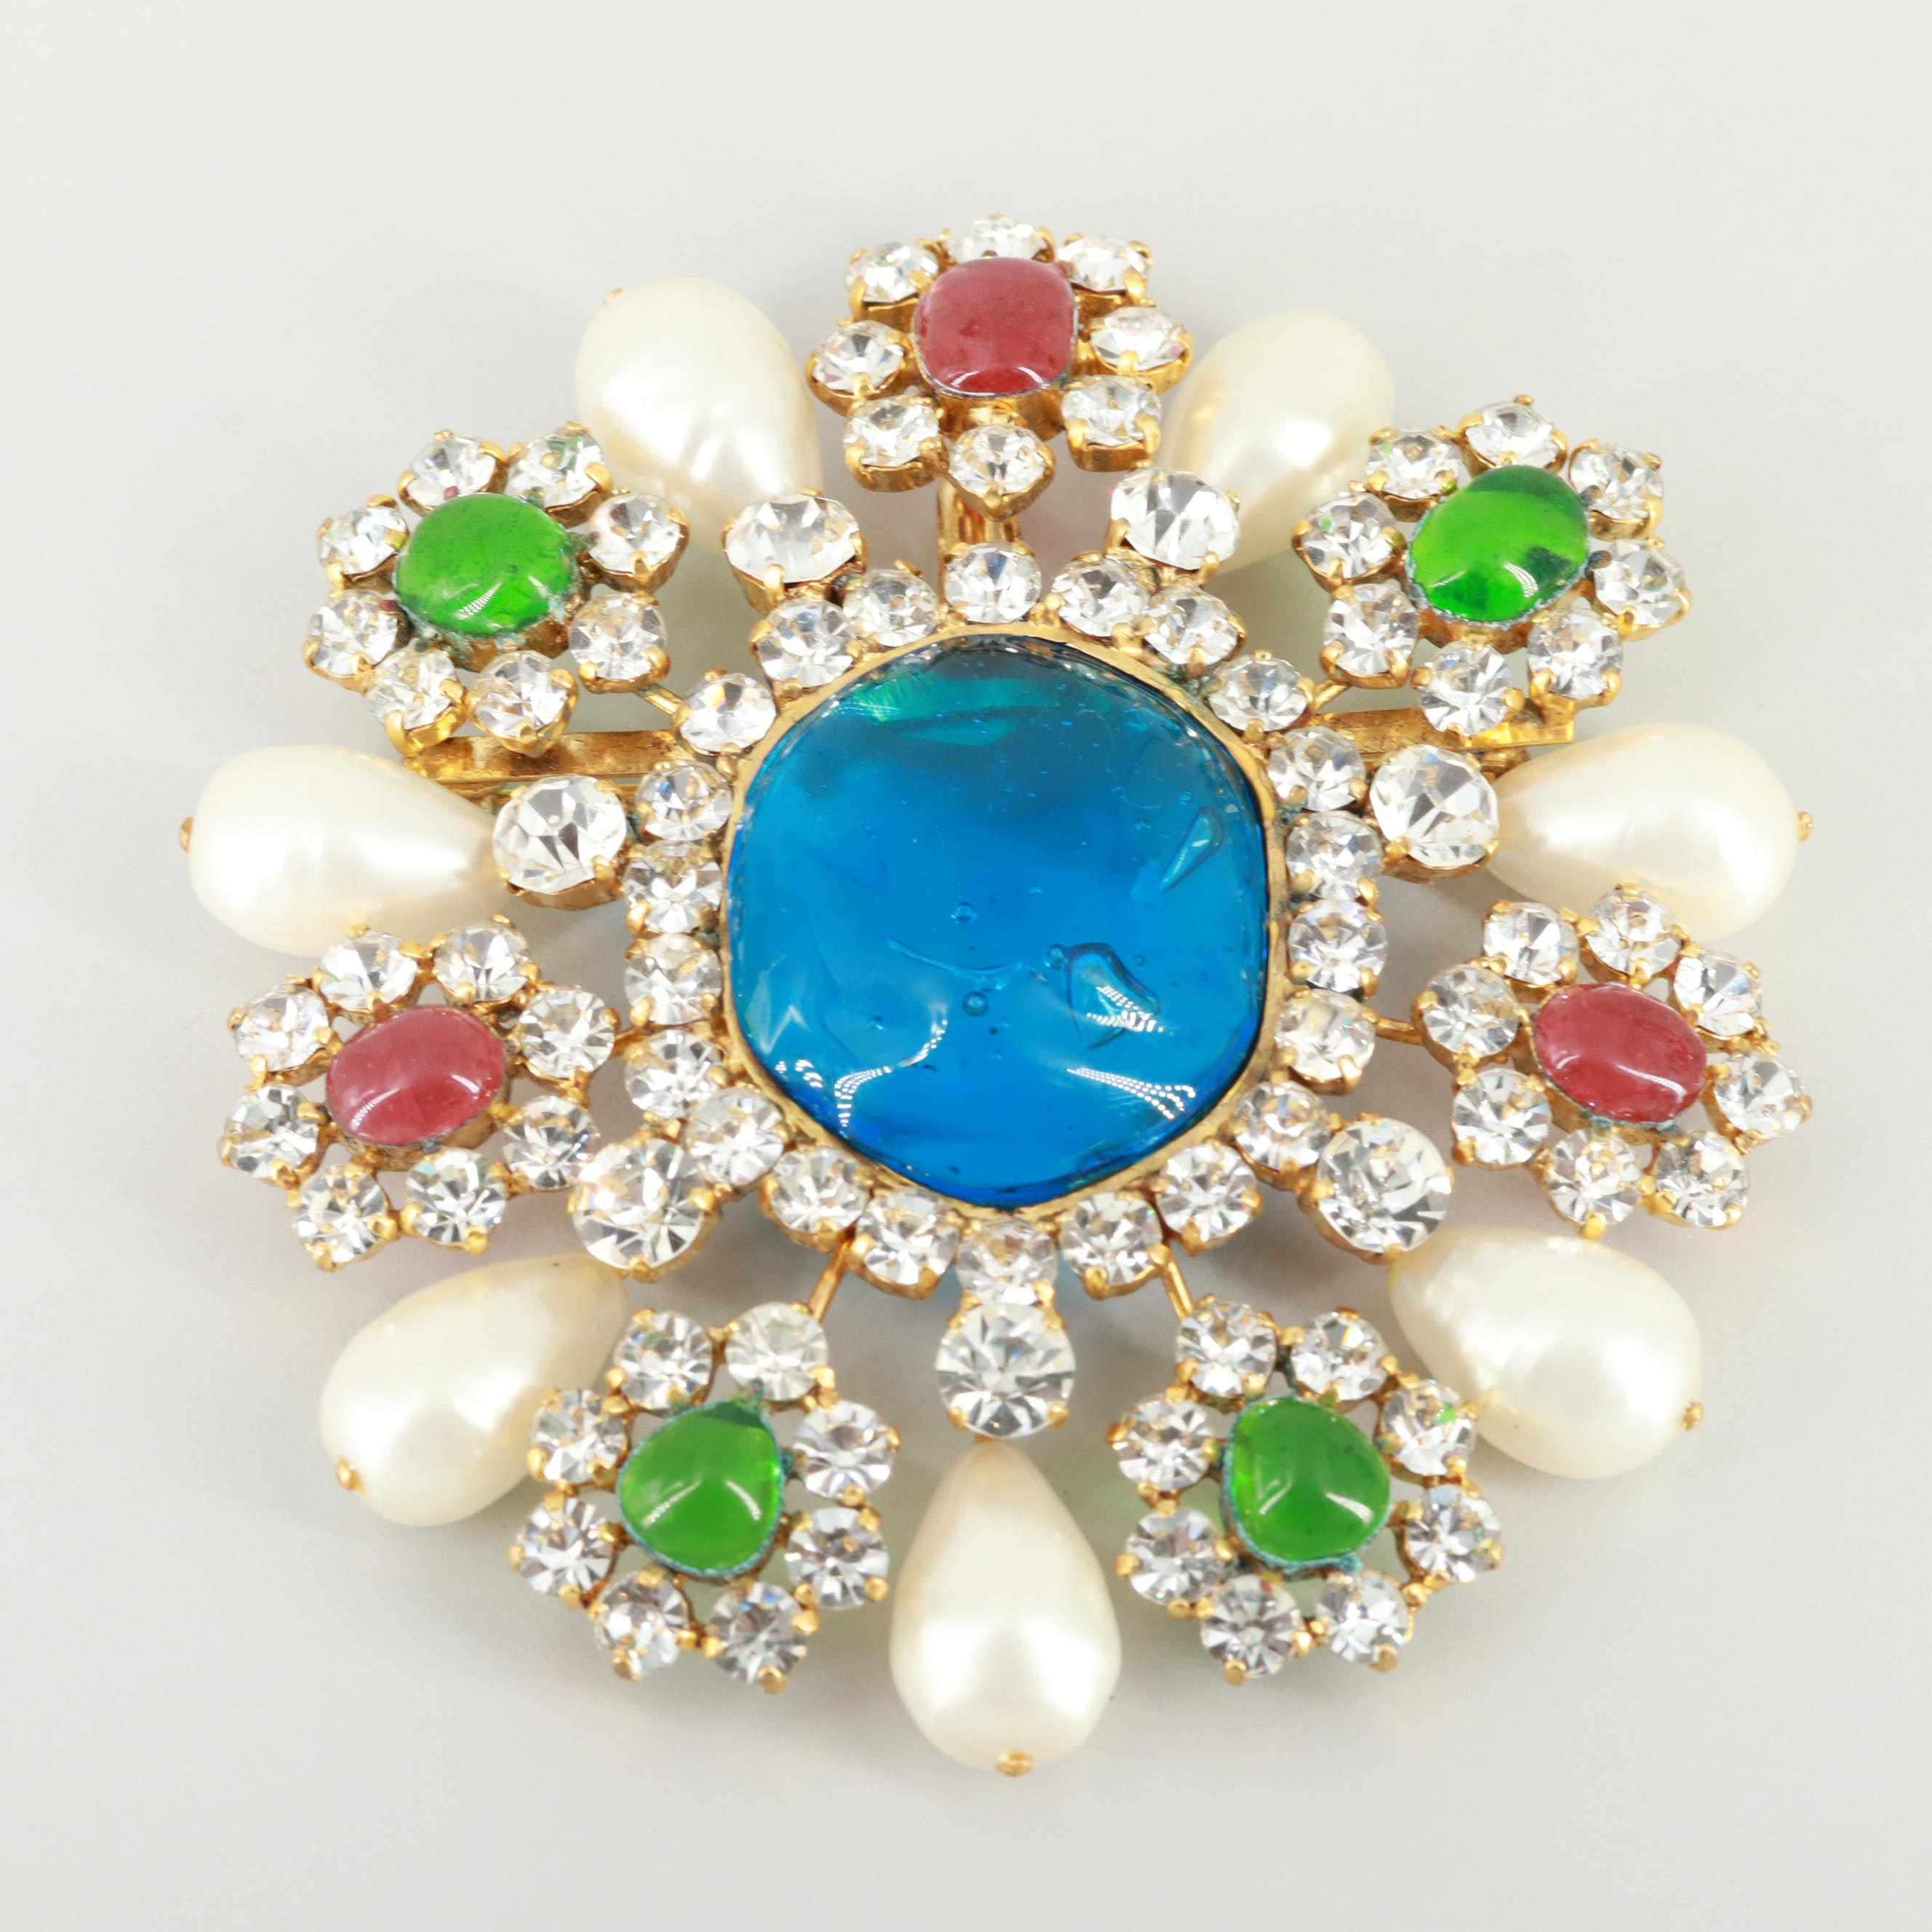 Late 1970s Chanel Gold Tone Gripoix Poured Glass and Imitation Pearl Brooch